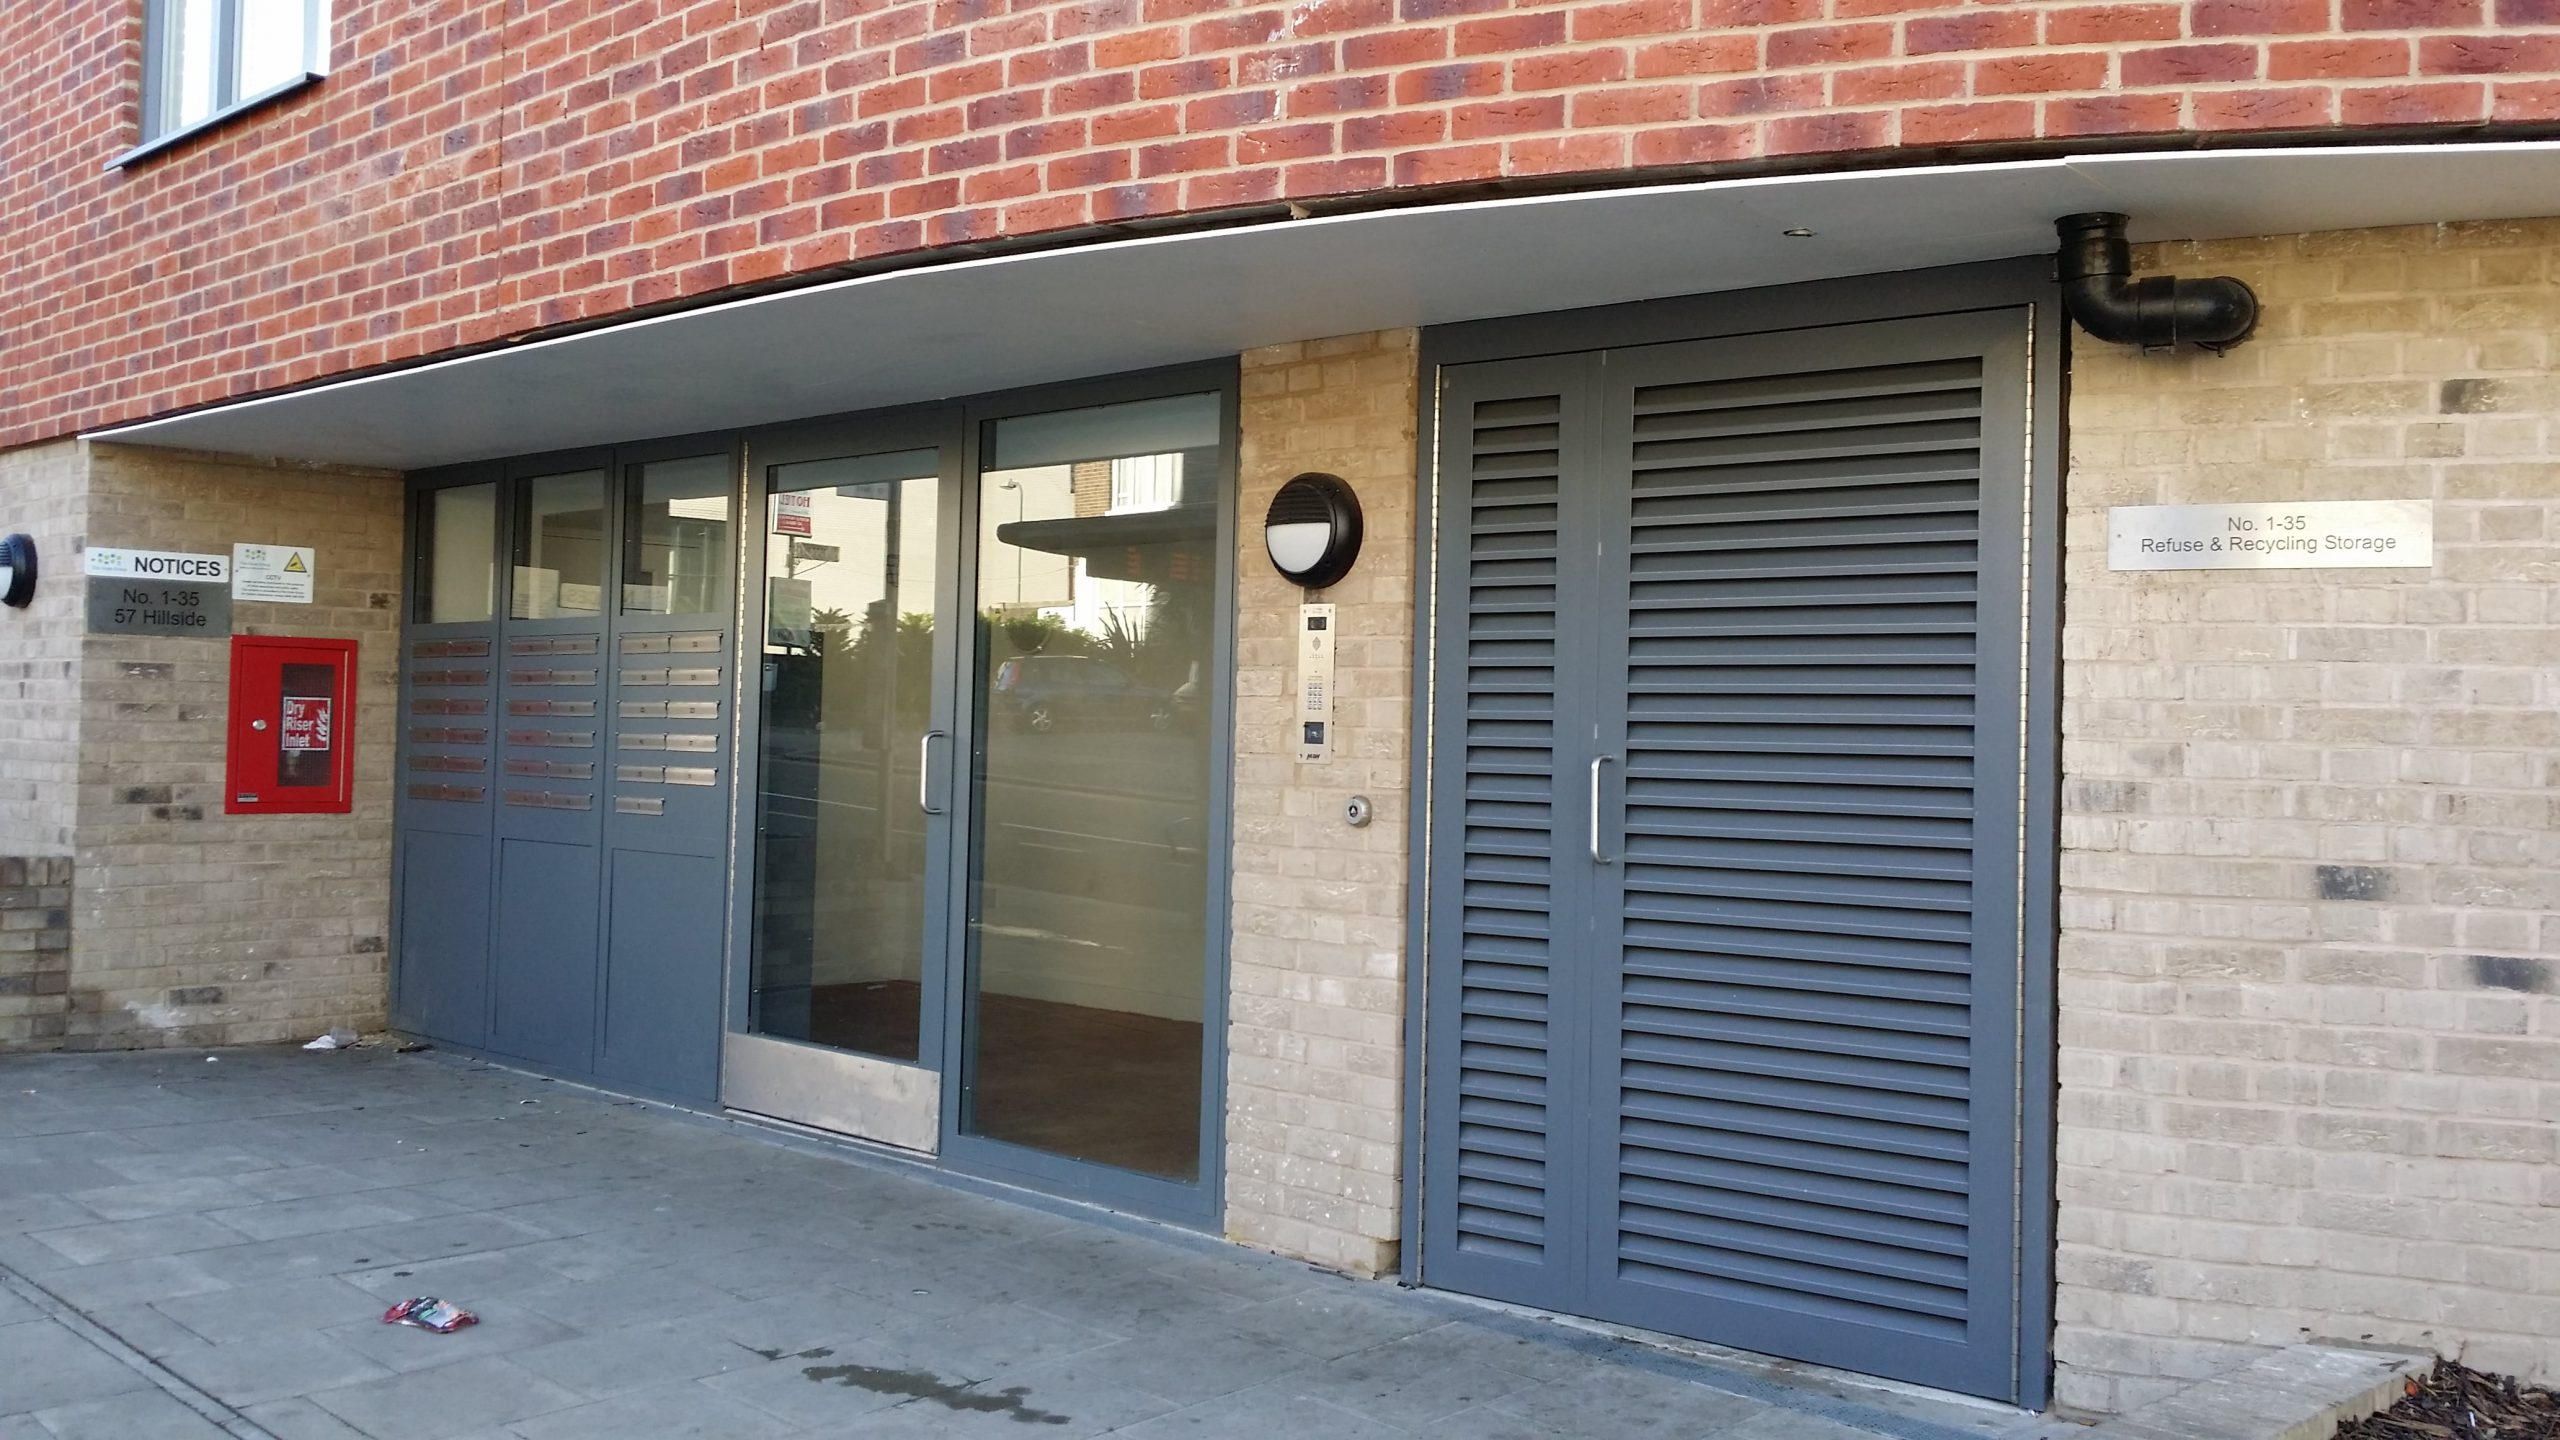 INDUSTRIAL COMMUNITY ENTRANCE STEEL DOORS FABRICATED TO LPS1175 SR2 AND PAS24 STANDARD BY PREMIER SECURITY CONSULTANTS LTD.